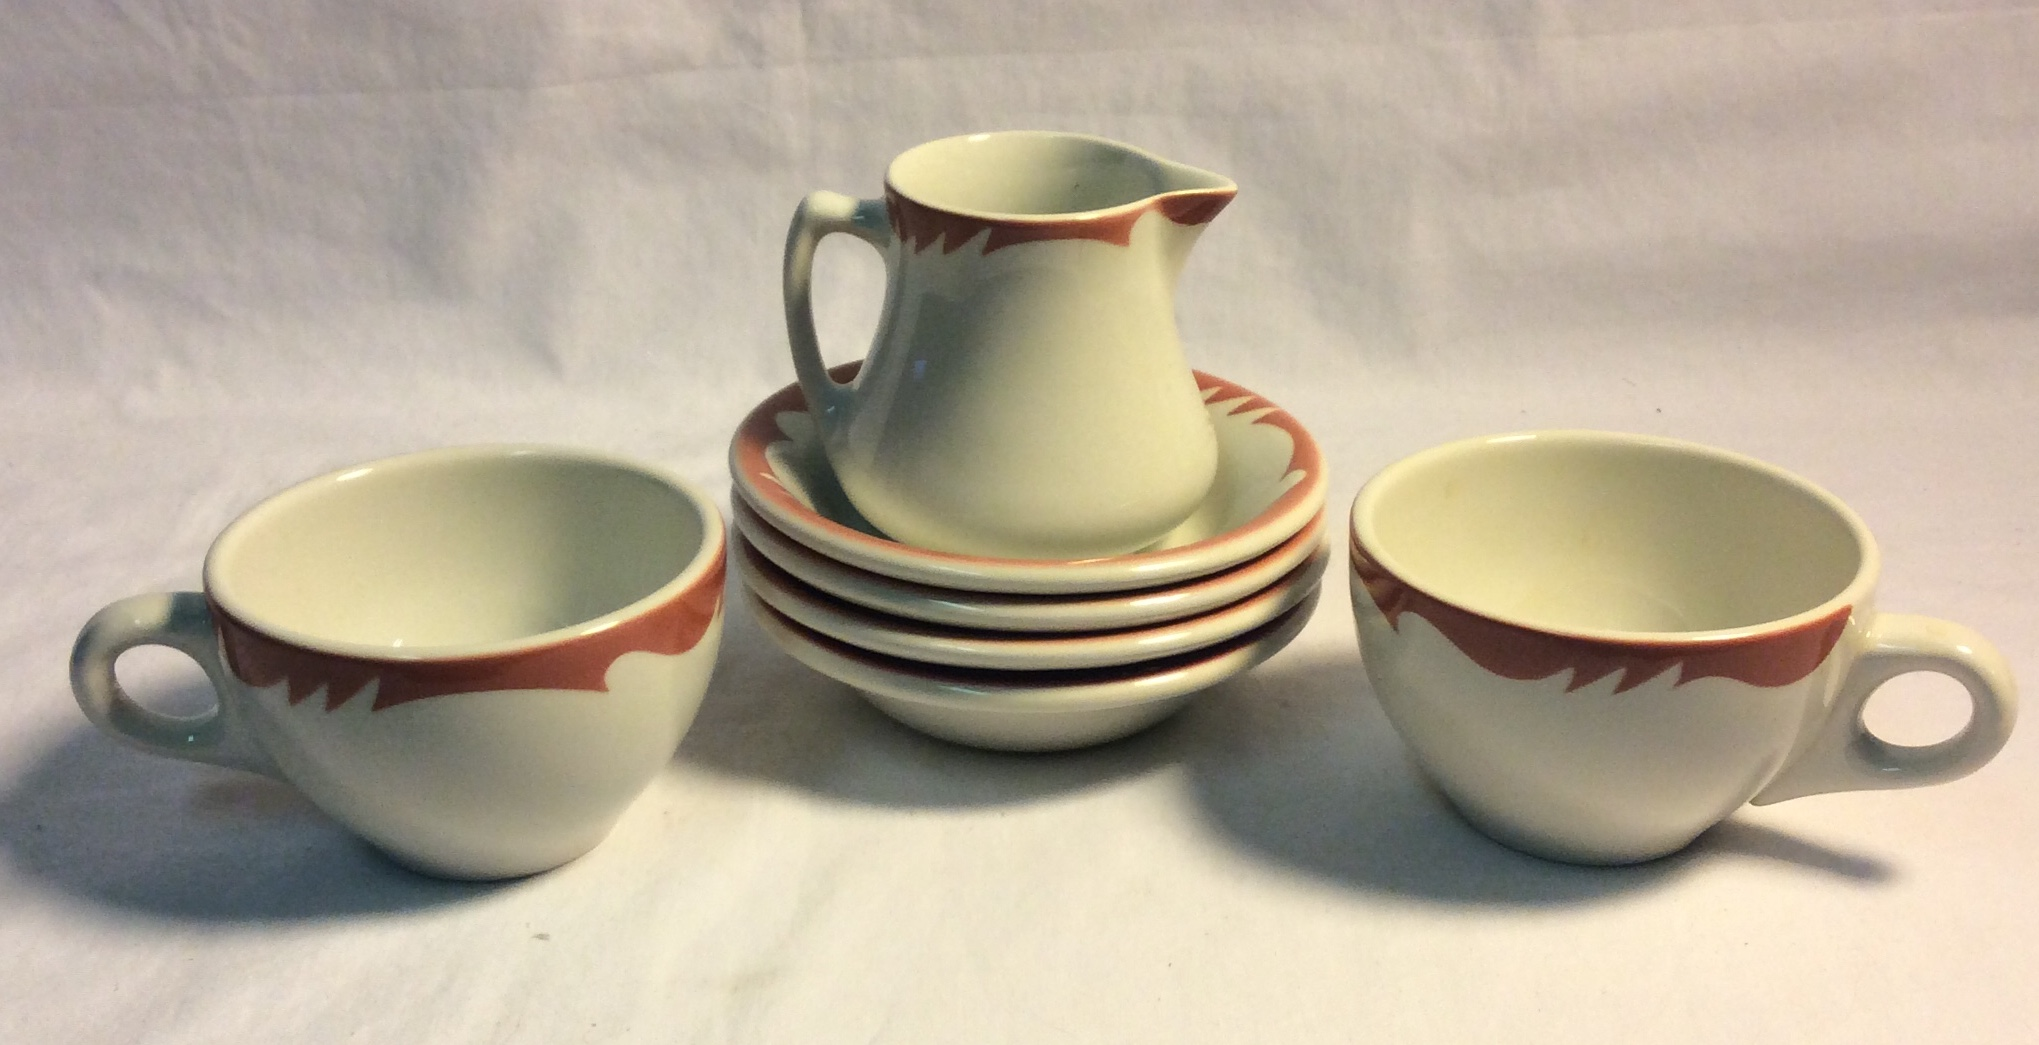 Assorted vintage diner dishes - tea cups, sugar plates, creamer - 7pcs